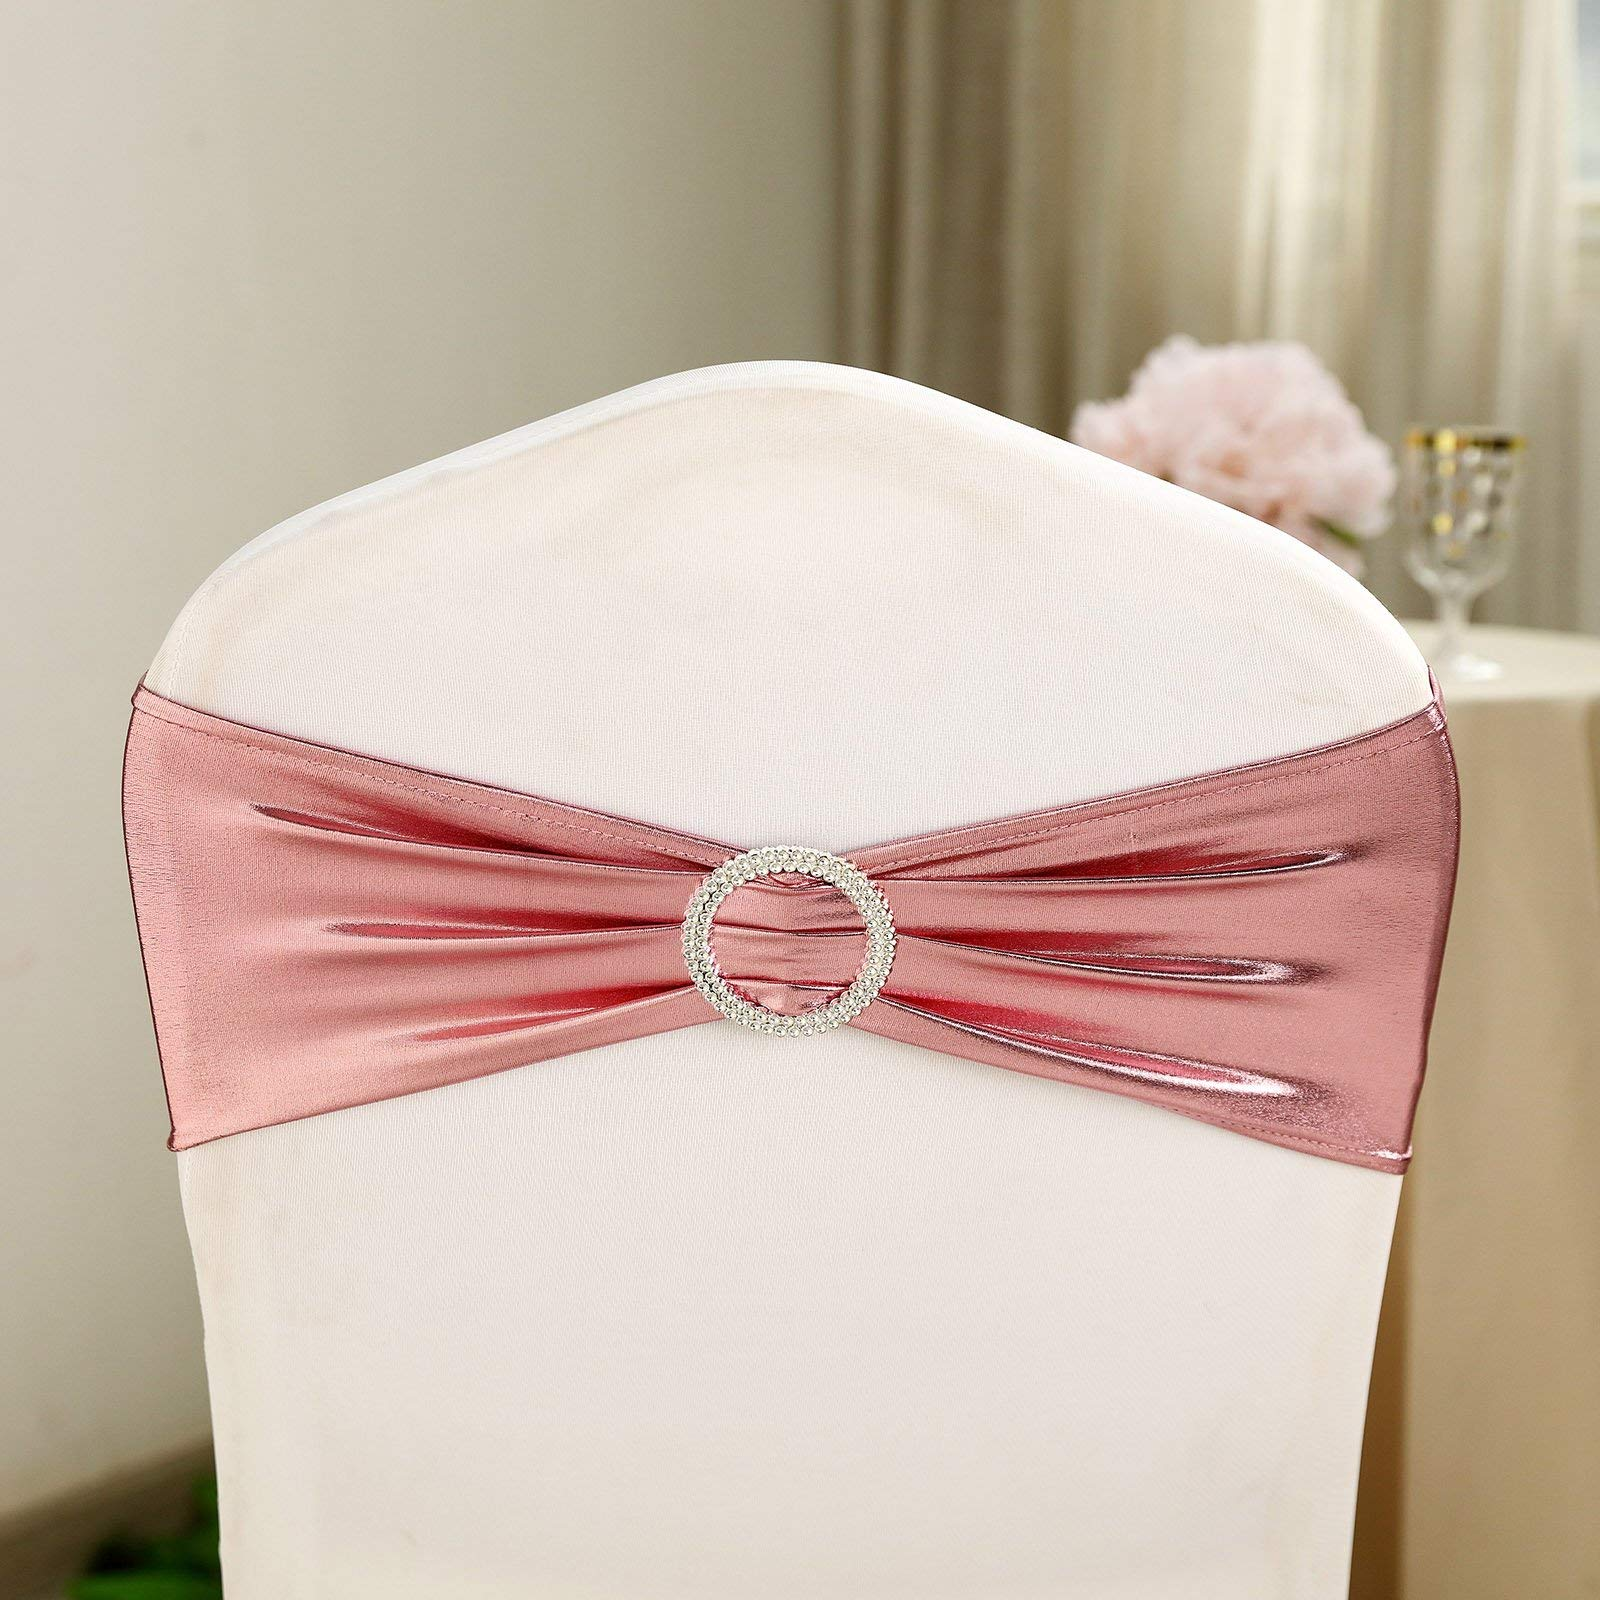 Efavormart 5 Pack Rose Gold Spandex Chair Sashes with Attached Round Diamond Buckles for Home Wedding Birthday Party Dance Banquet